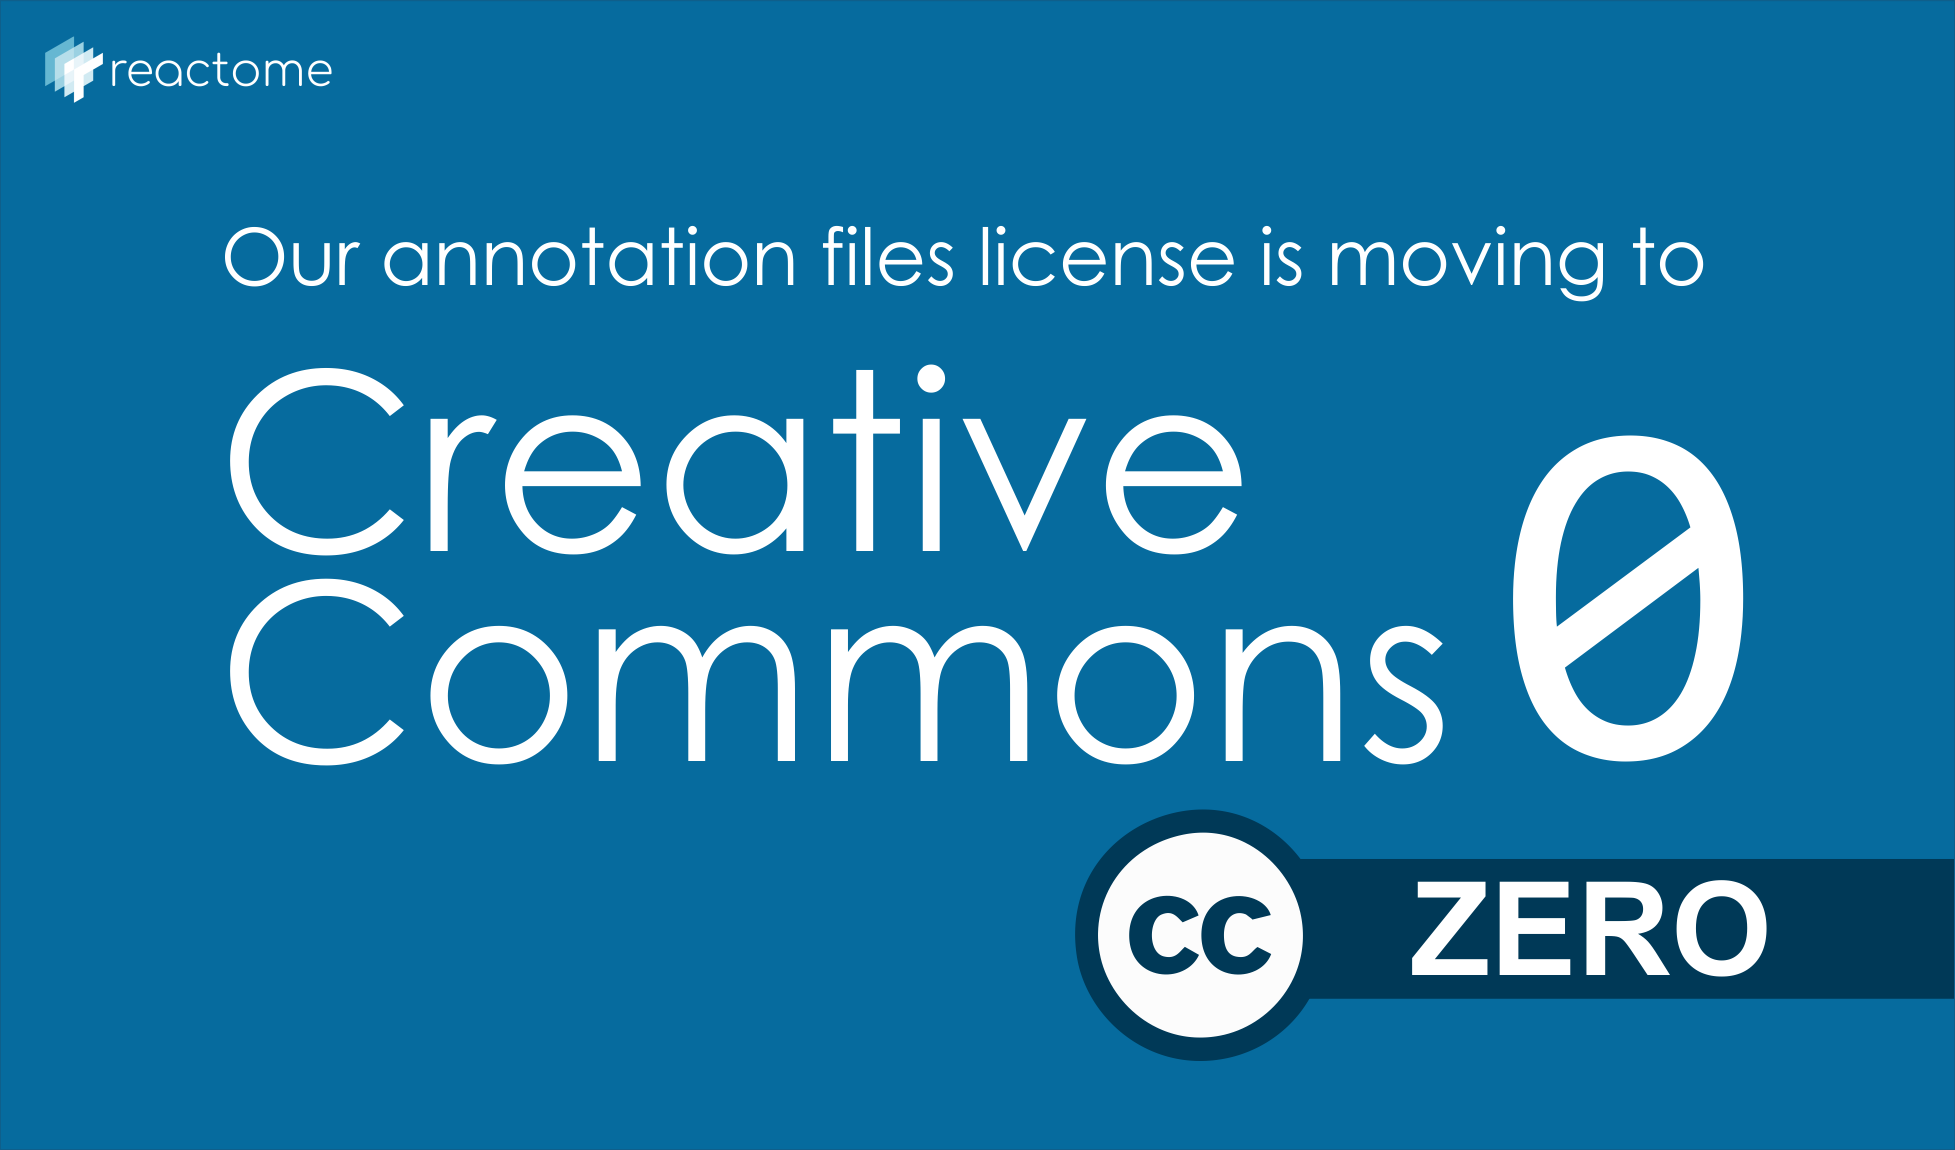 Creative Commons Zero - CC0